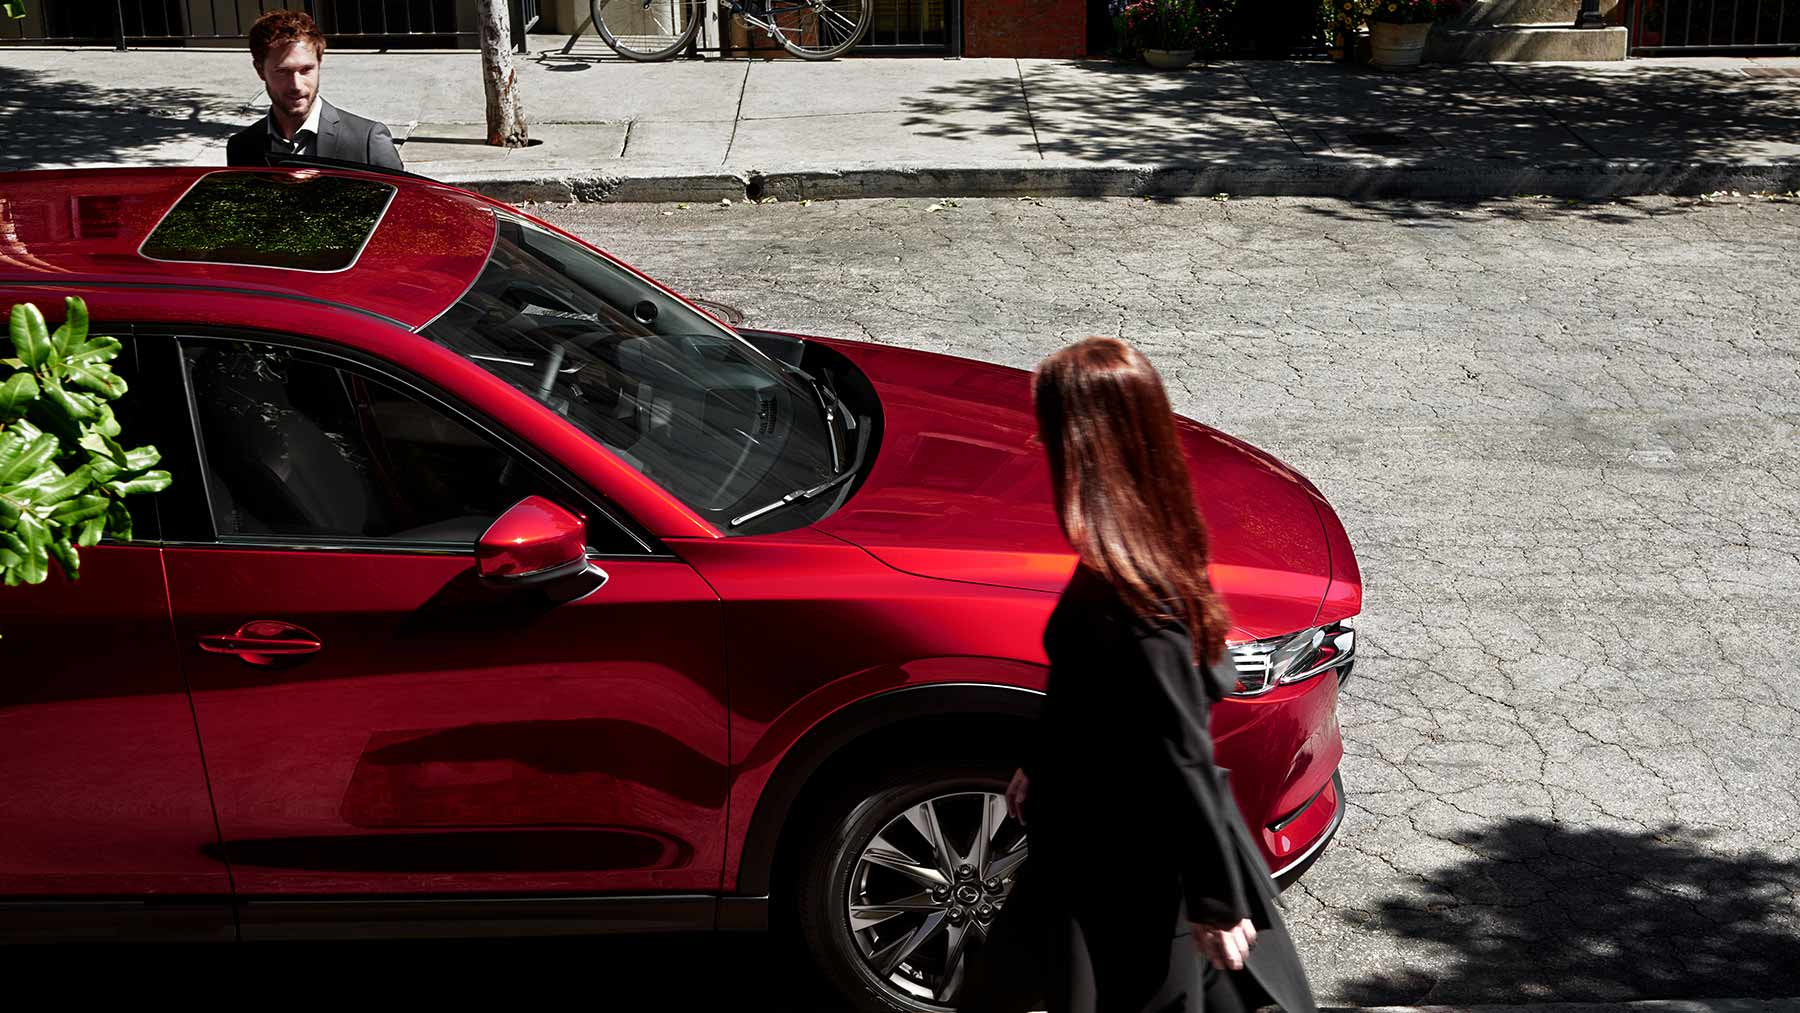 2019 Mazda CX-5 vs Ford Escape Safety Features near St. Charles, IL